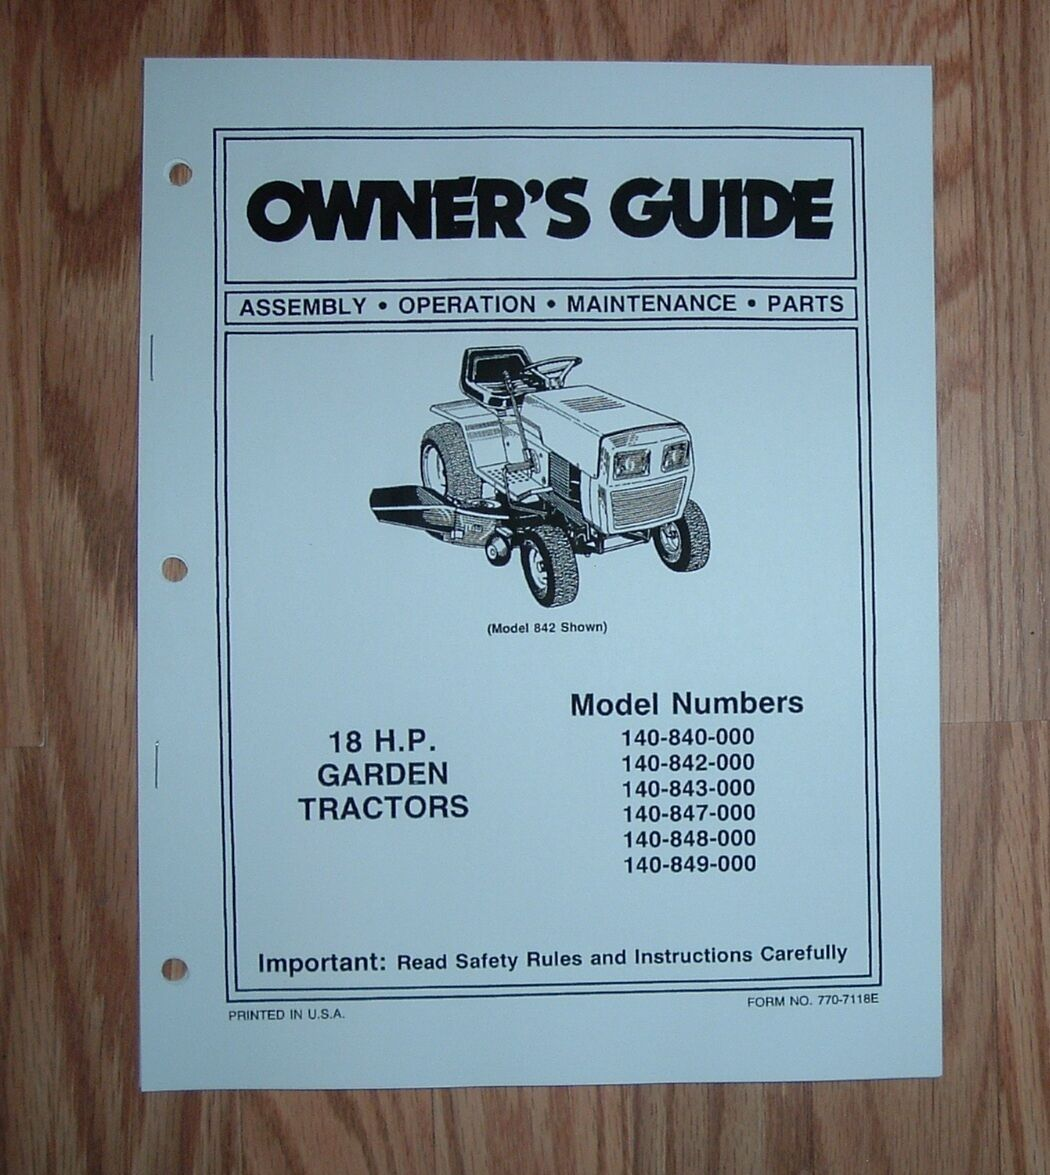 Mtd 140-842 Lawn & Garden Tractor Owner / Parts List Manual 1 of 1Only 1  available See More